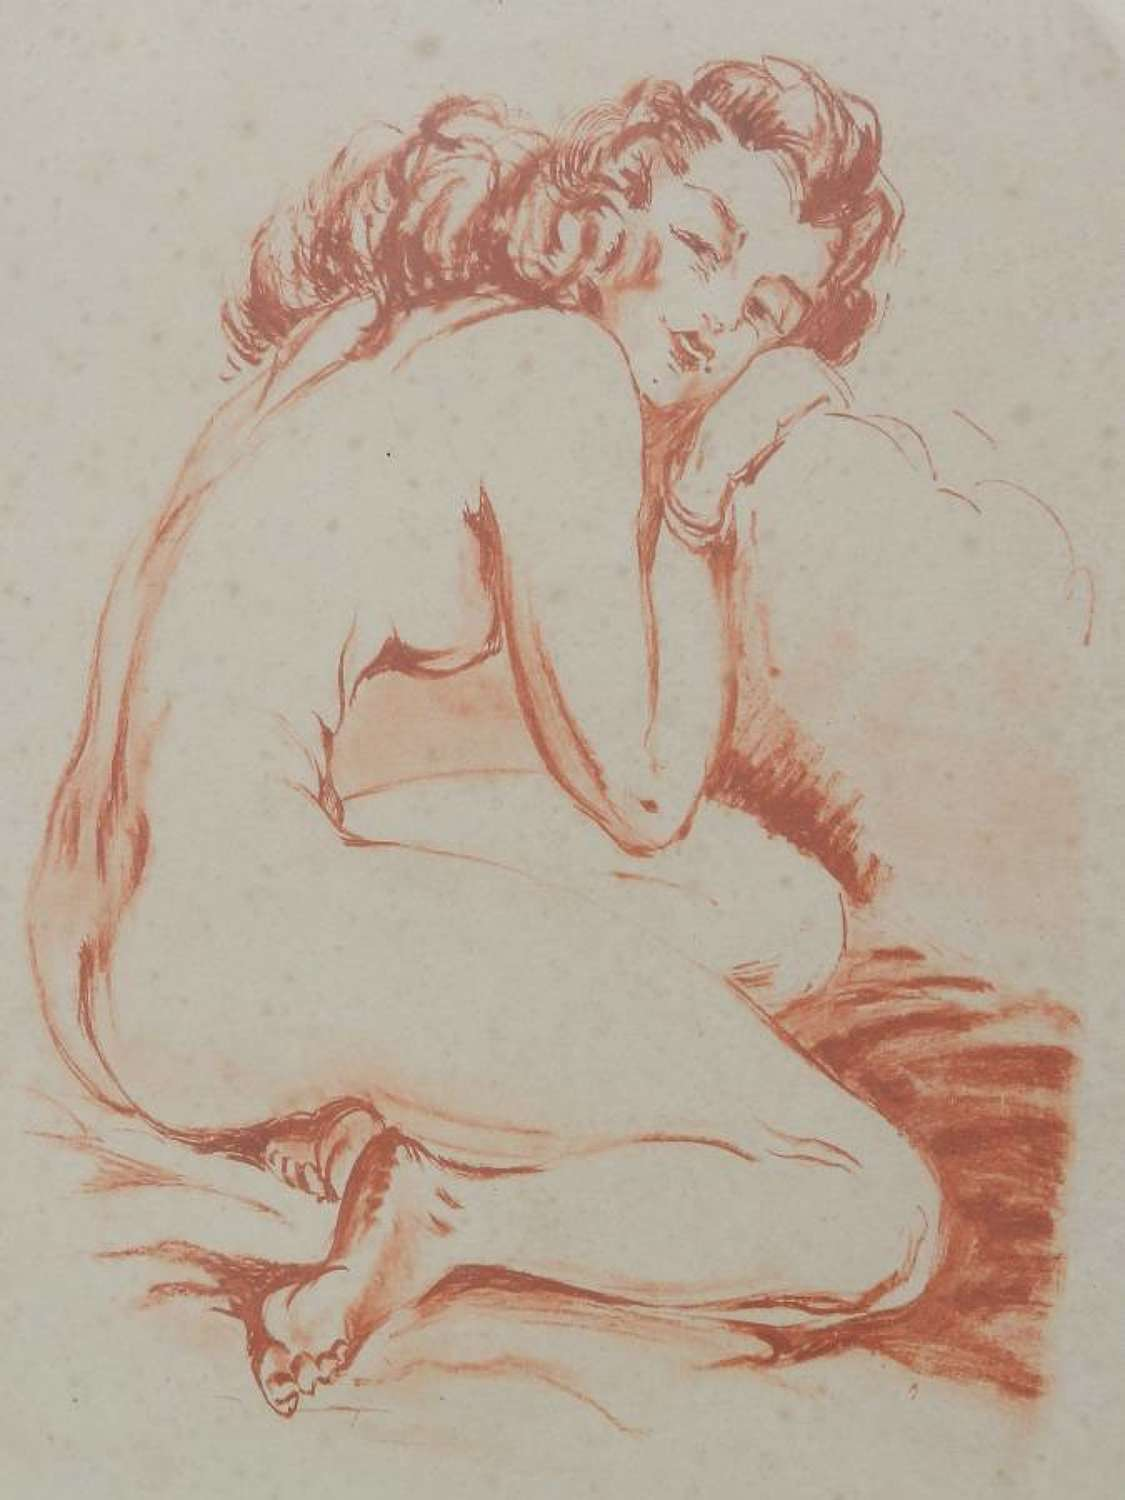 Original Signed French Print Etching of Nude Woman c1940